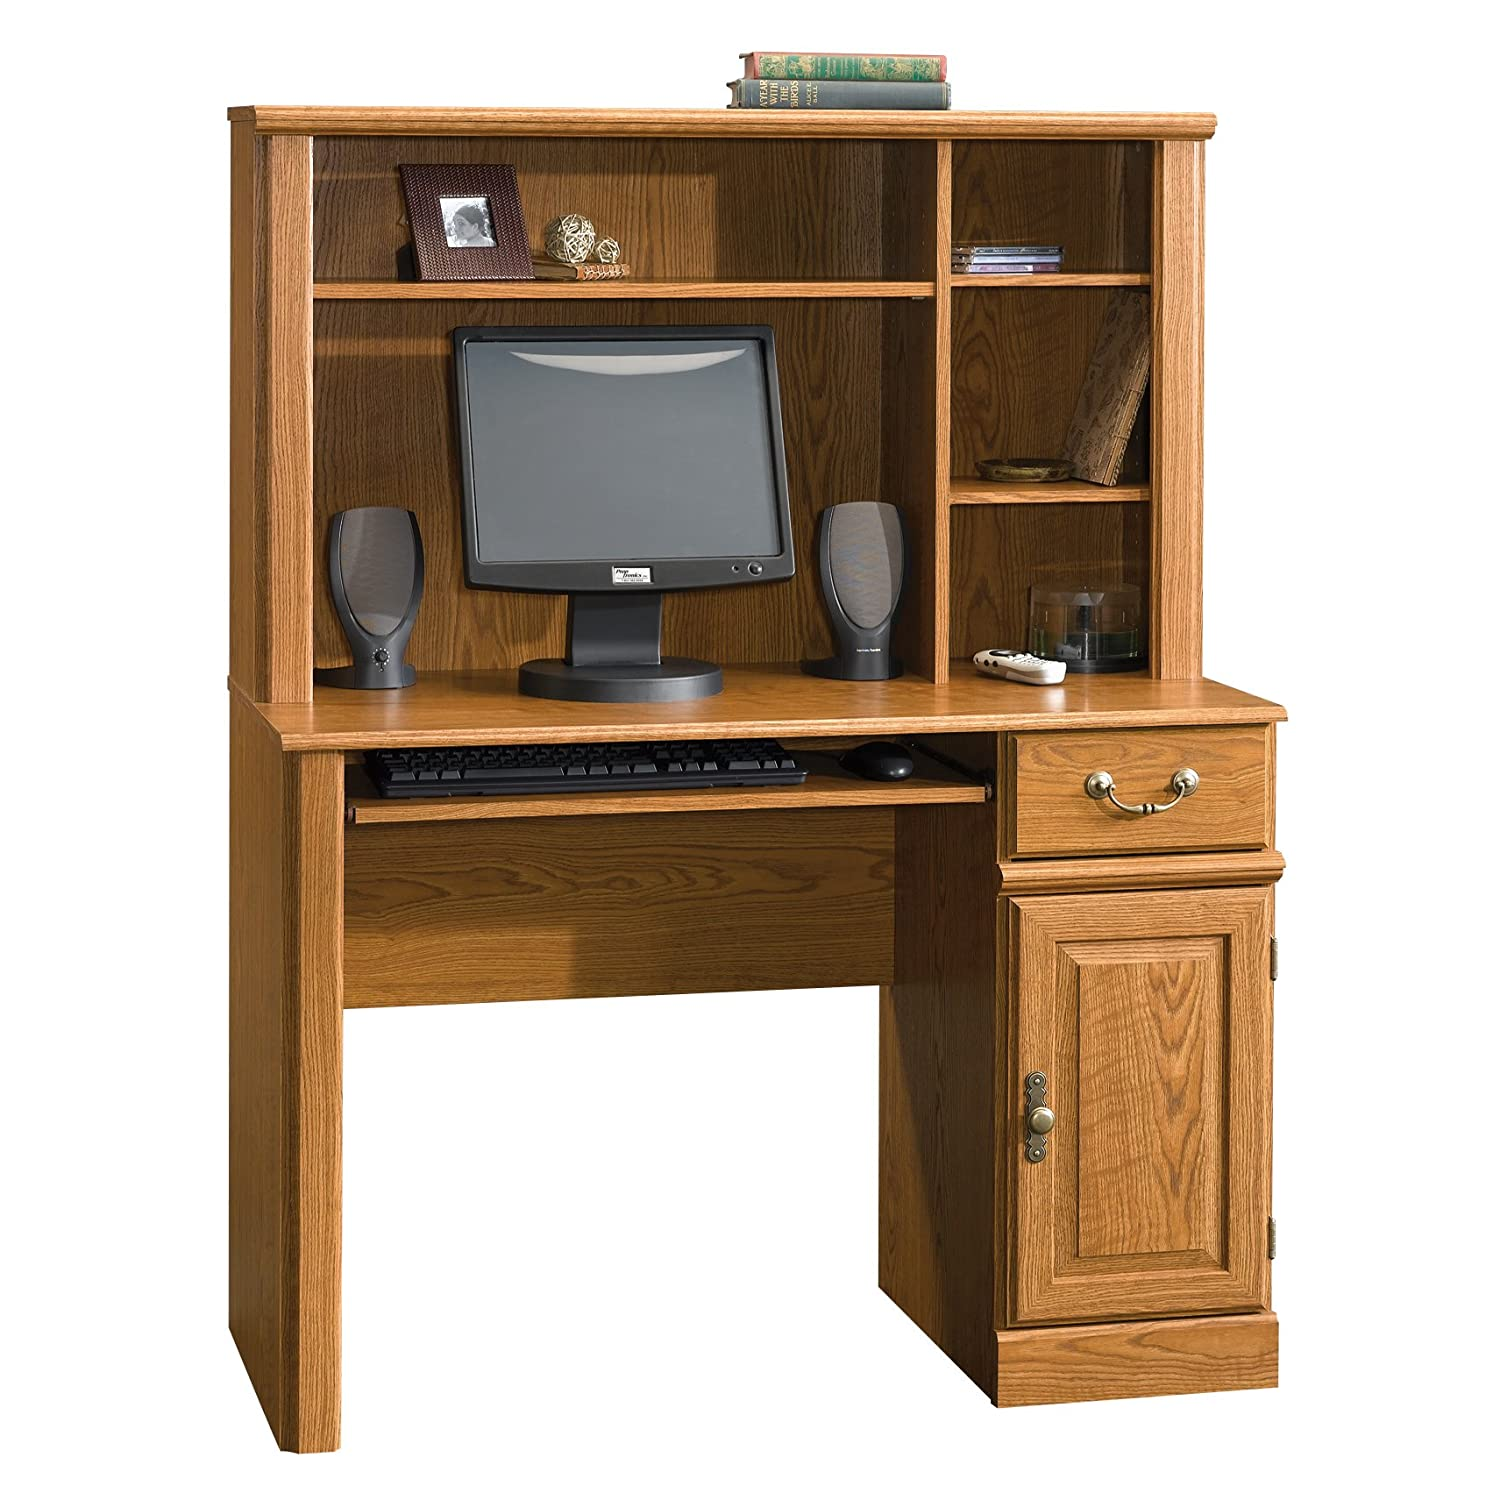 Charmant Amazon.com: Sauder Orchard Hills Computer Desk With Hutch, Carolina Oak:  Kitchen U0026 Dining